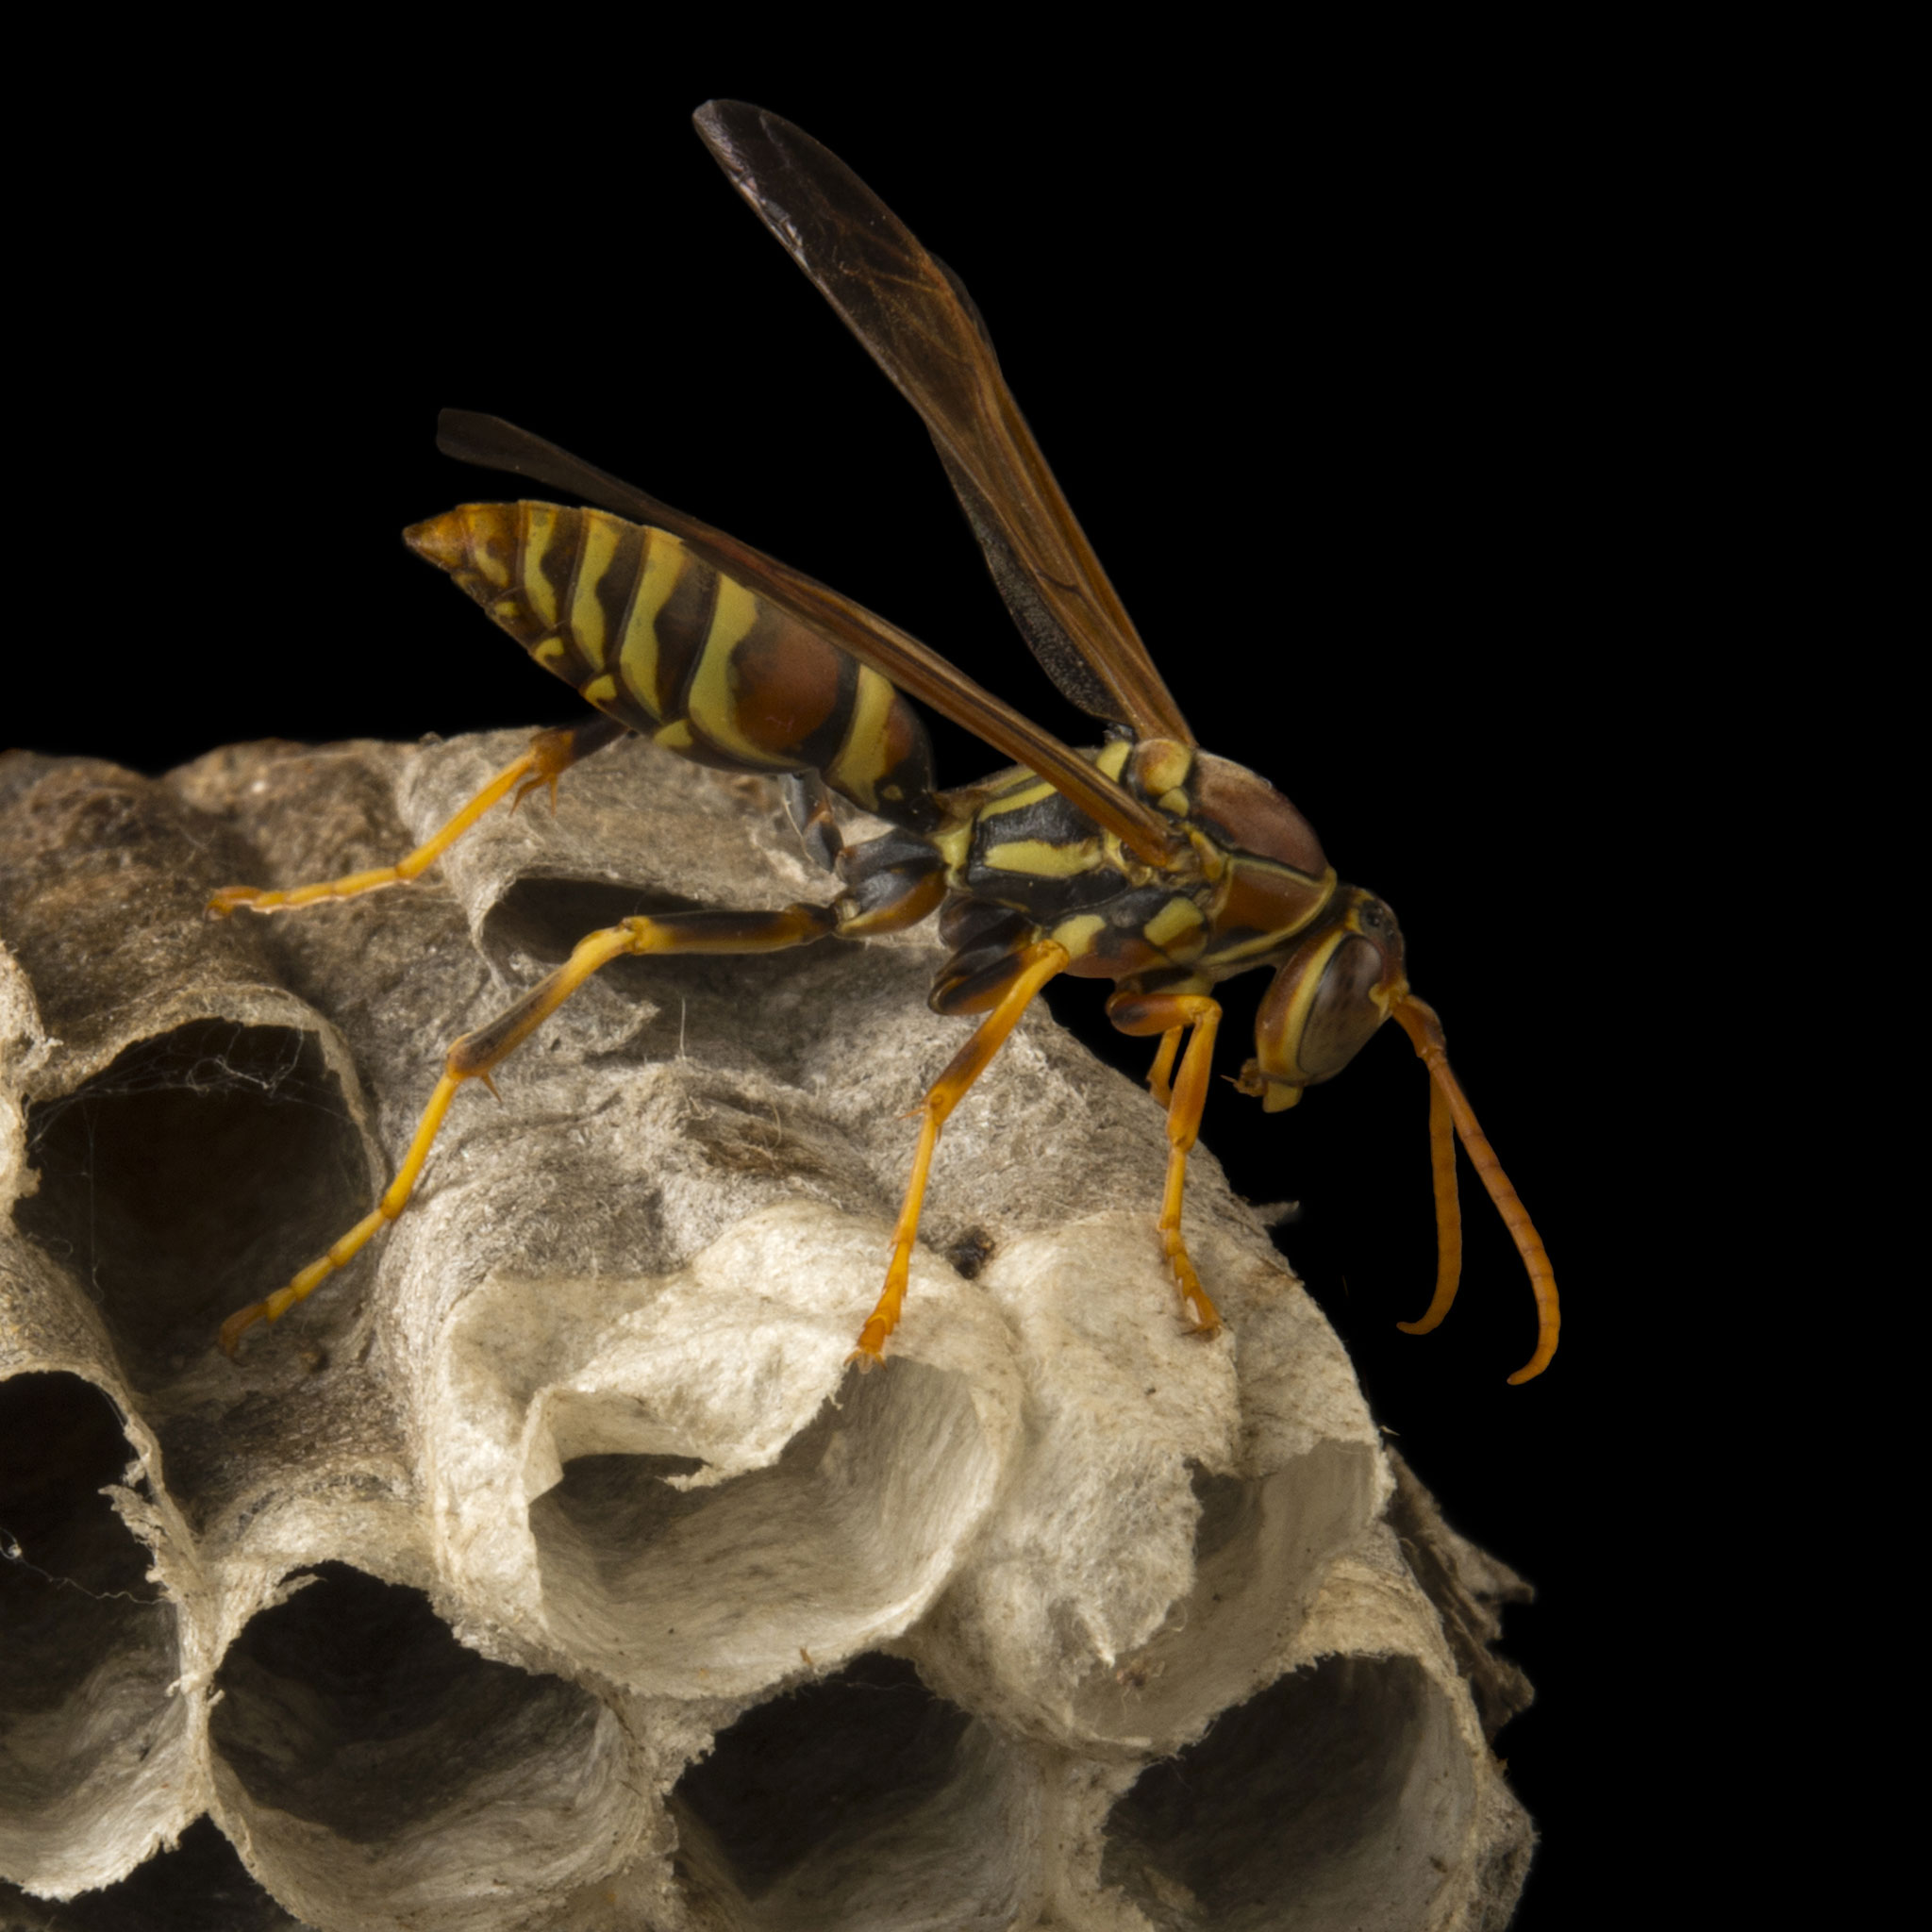 Wasps | National Geographic